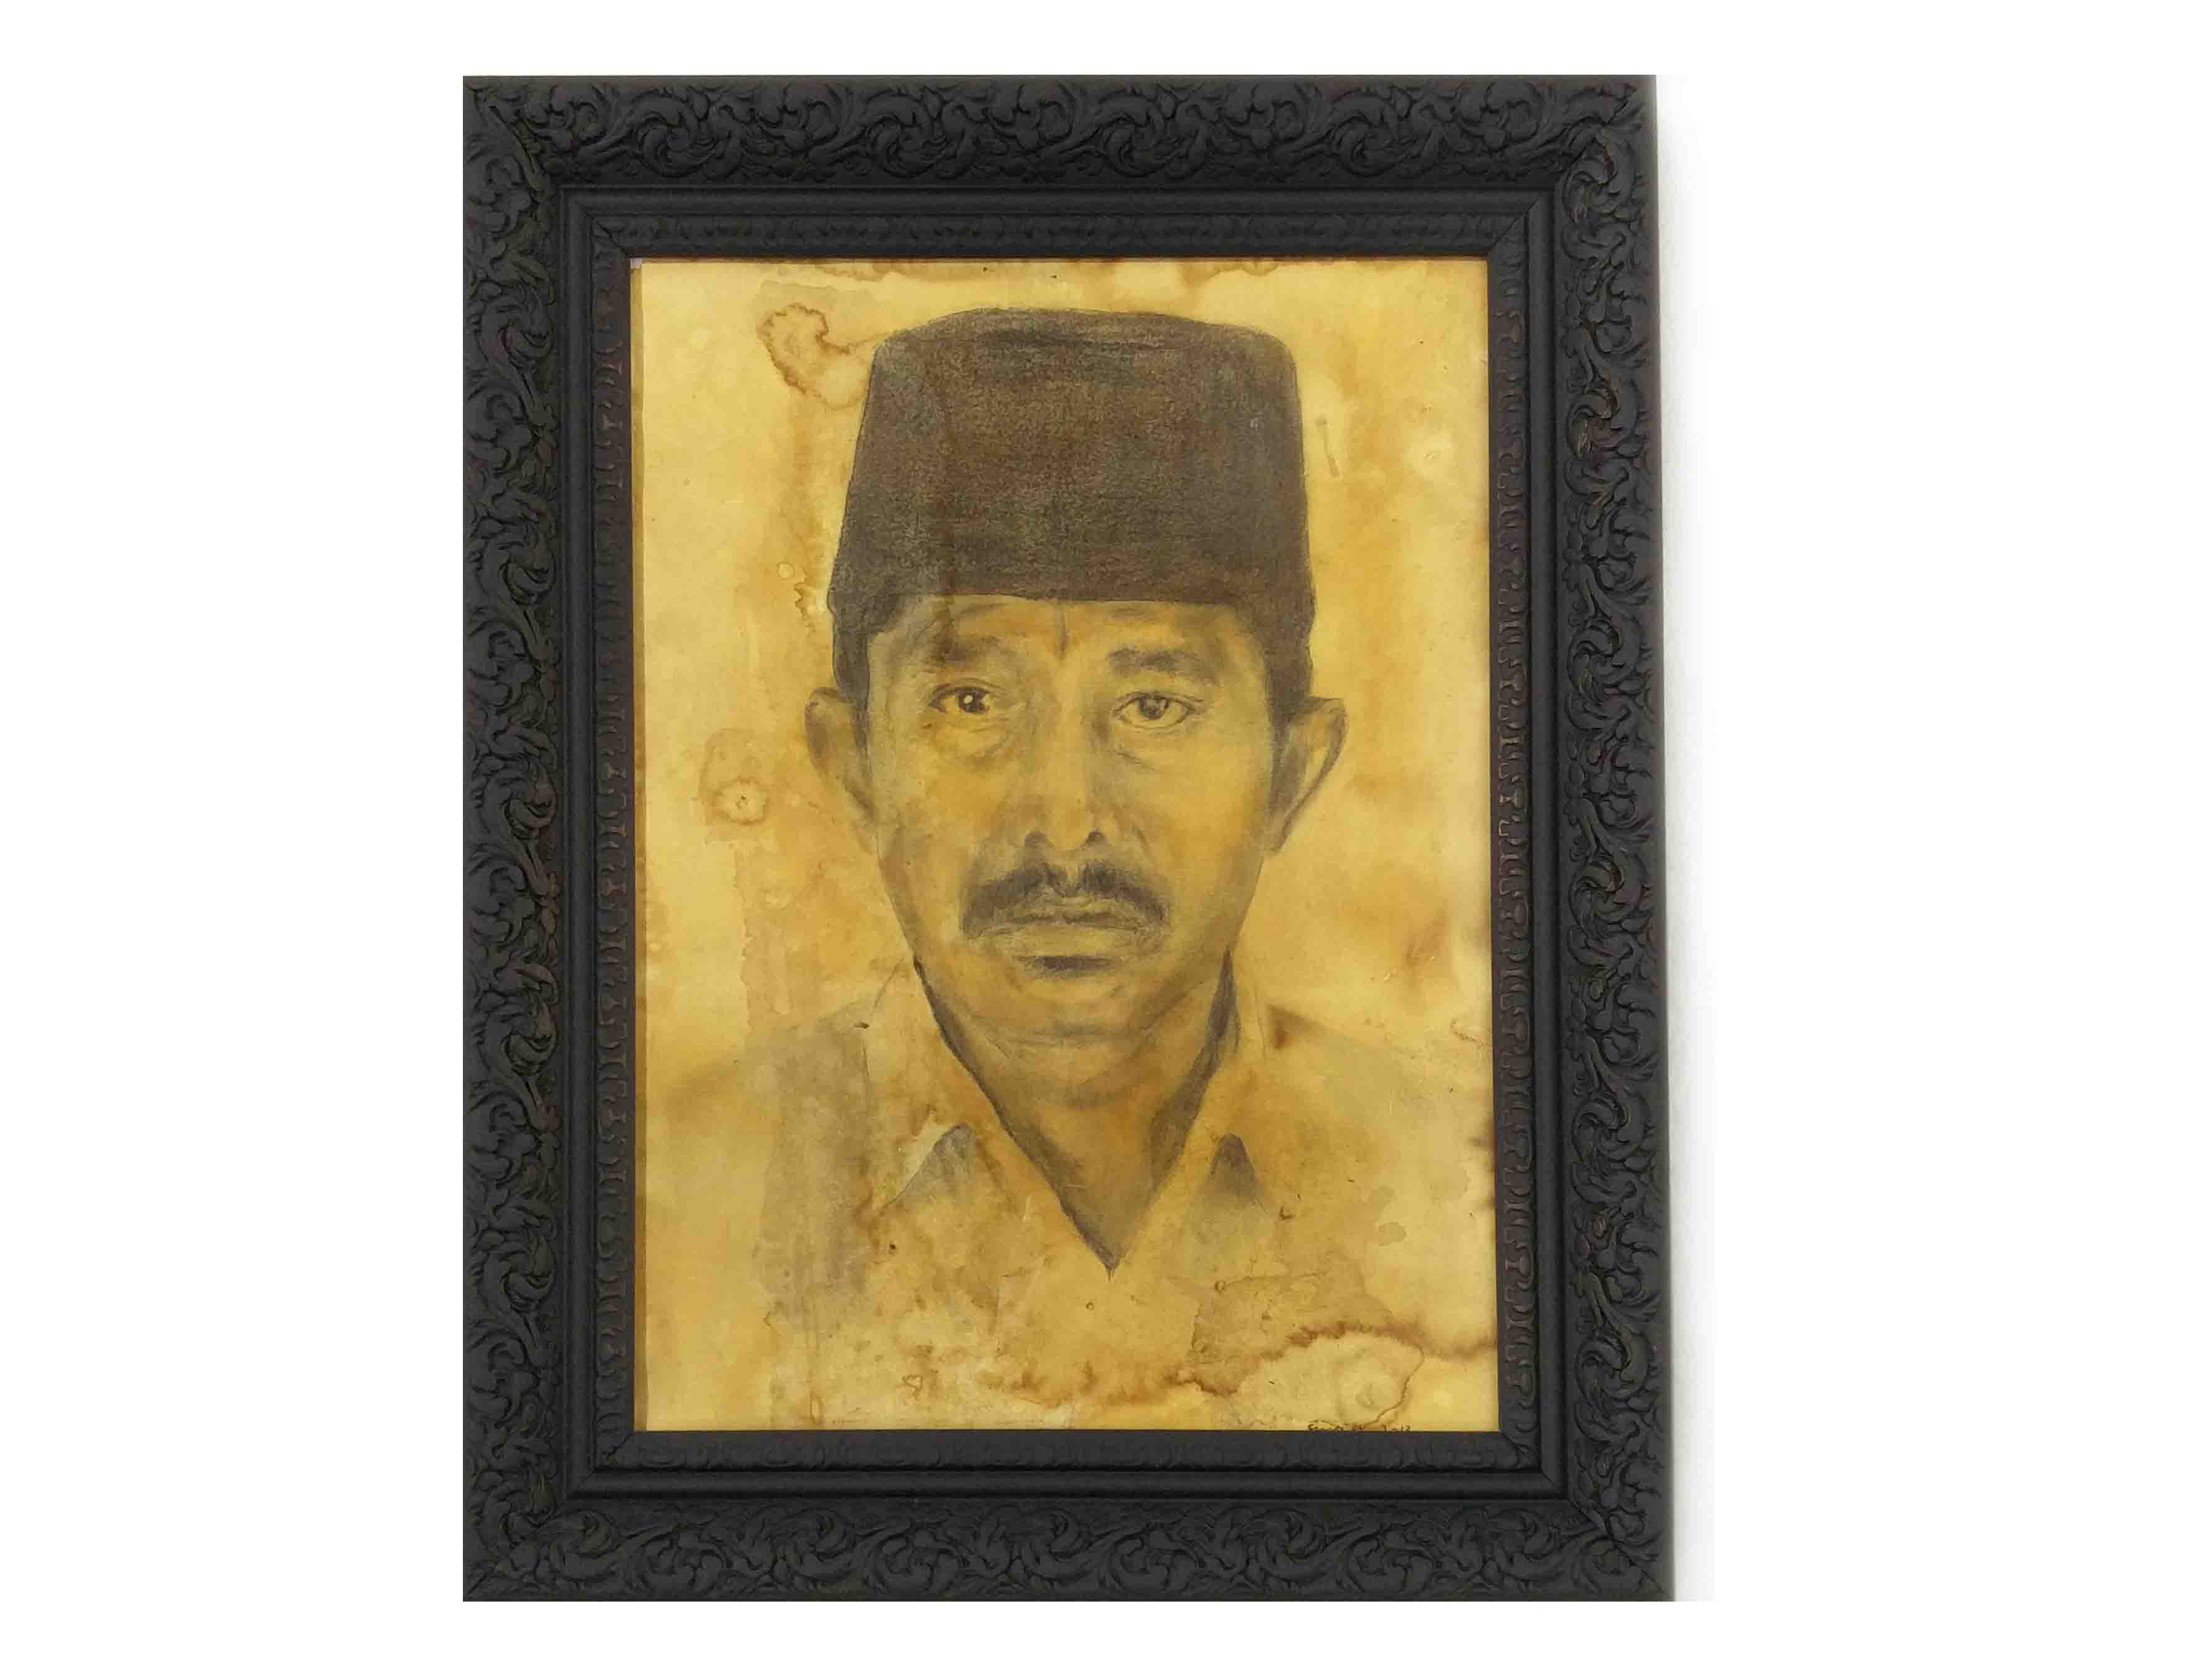 Paman, 40 x 50 cm, 2017, Tobacco Juice painting and Wooden Frame